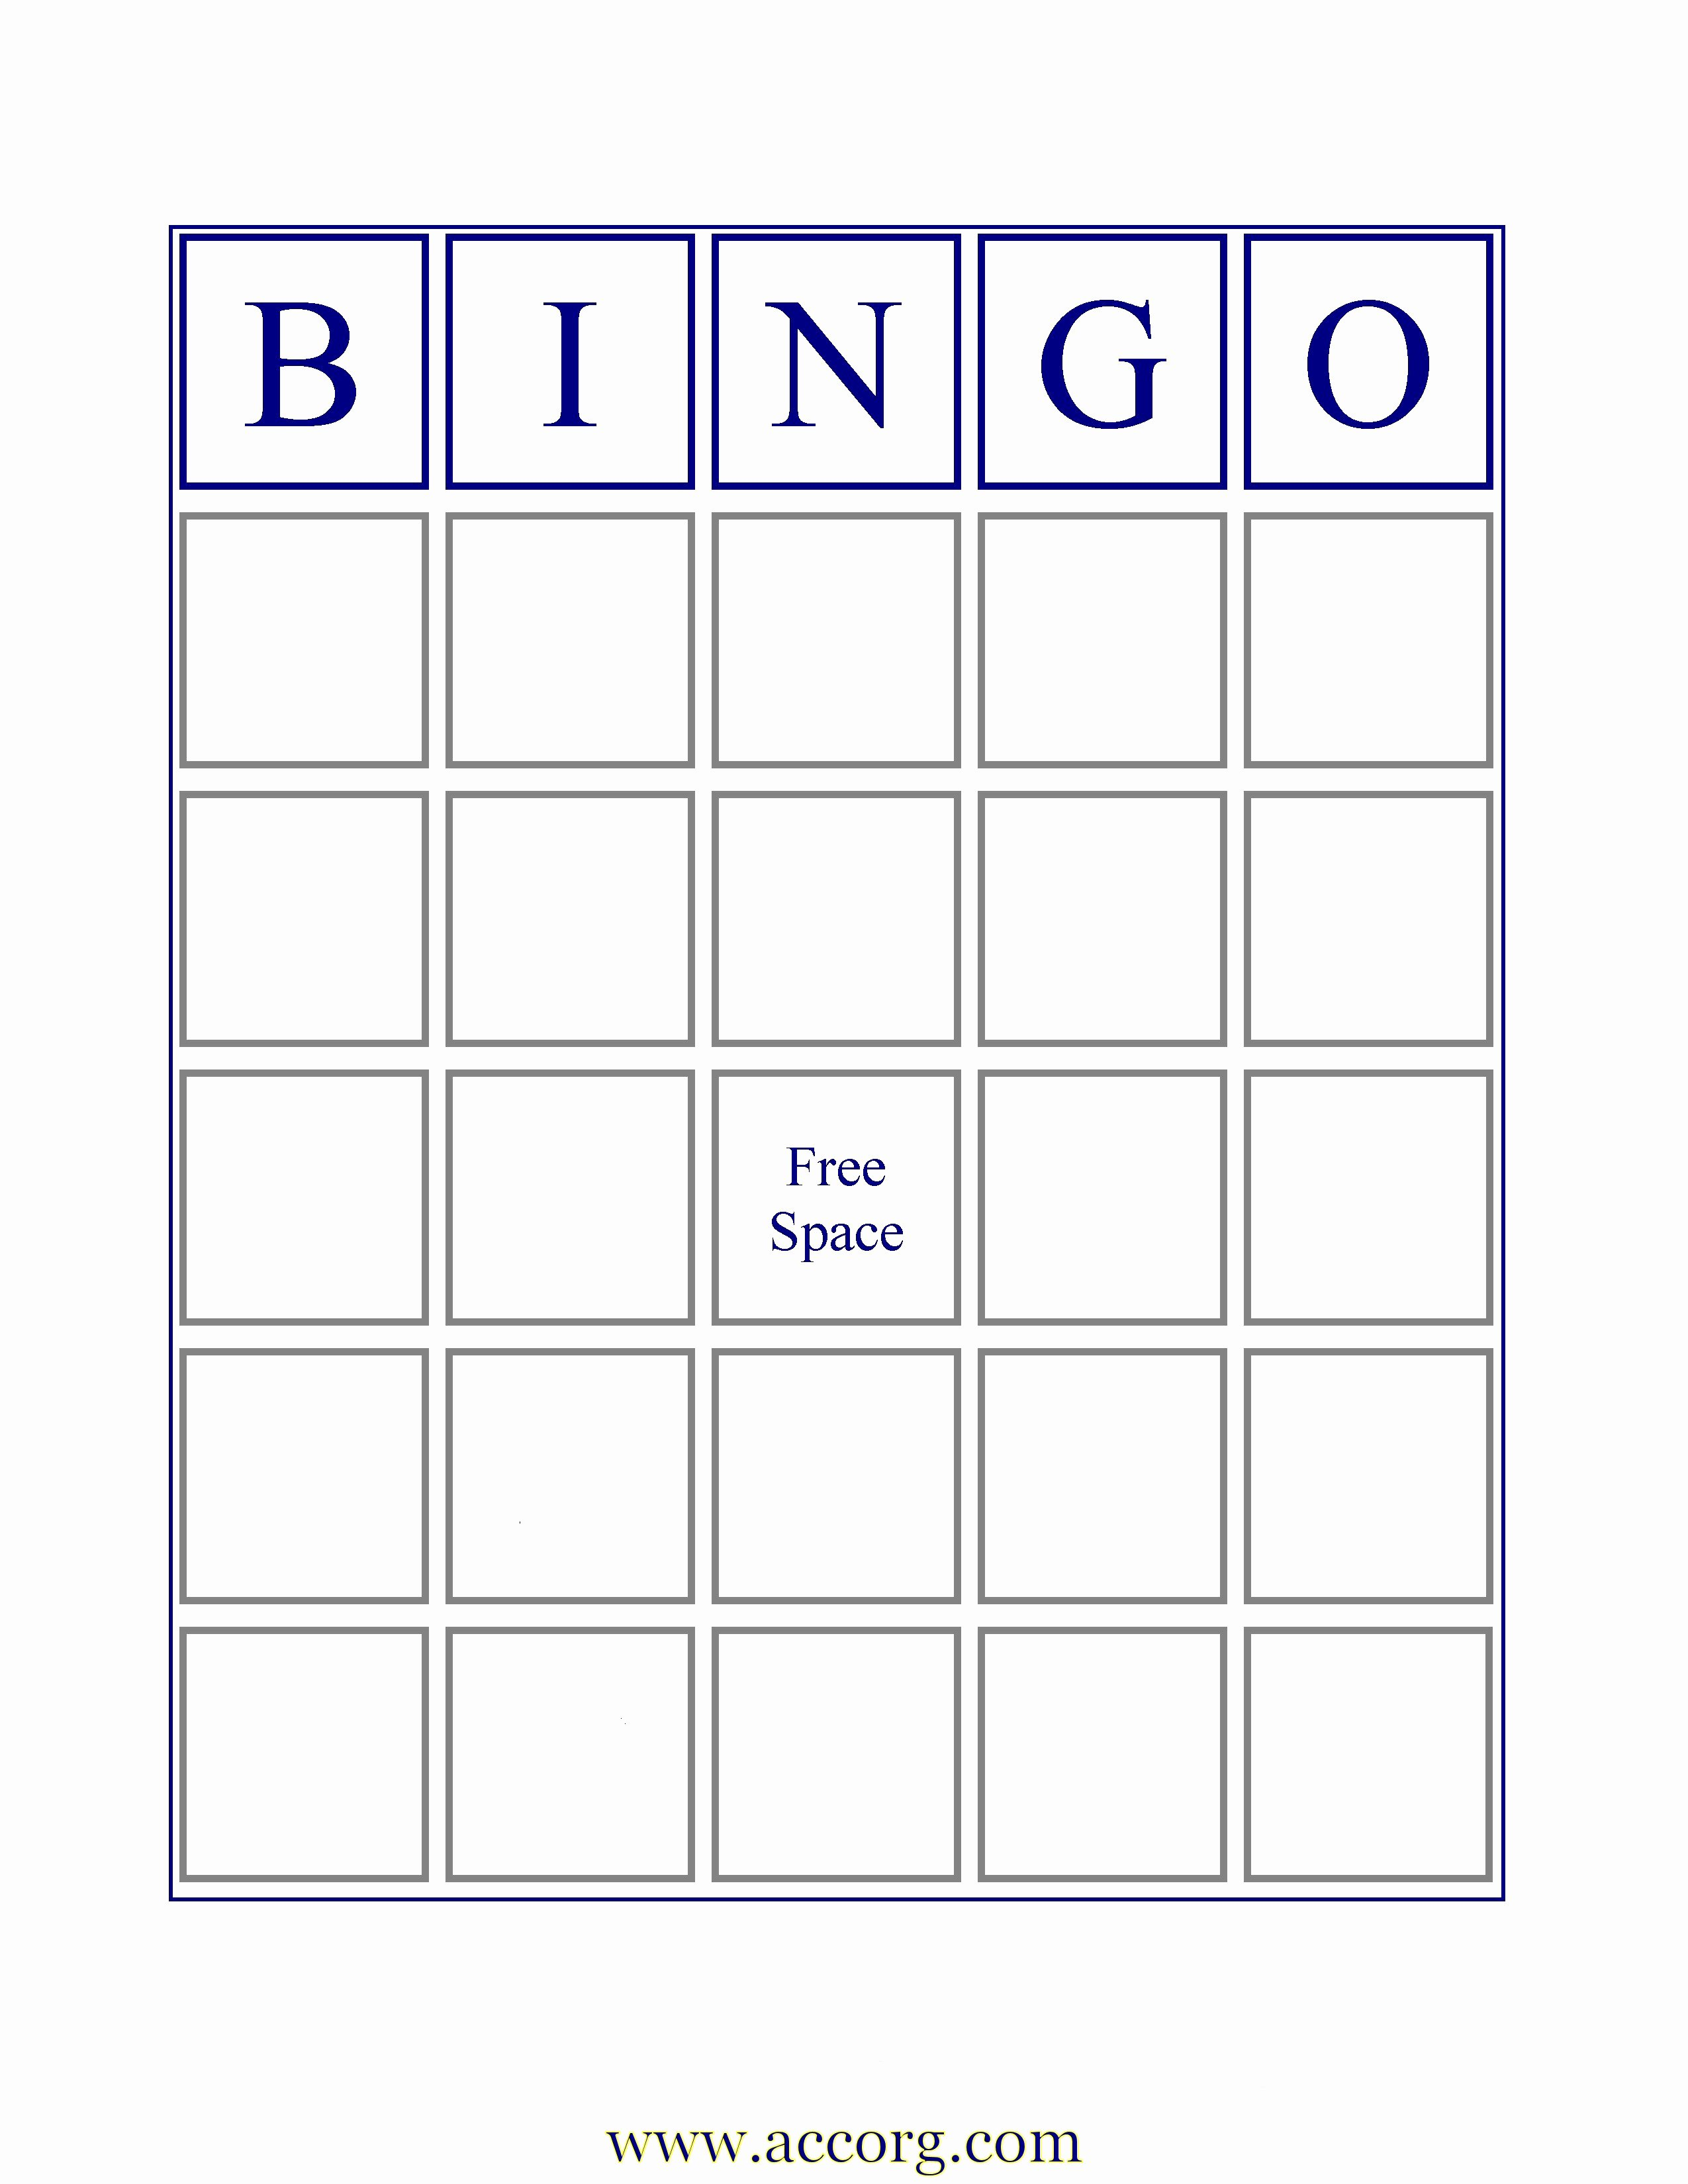 Free Printable Bingo Boards Best Of International Bingo association Downloads